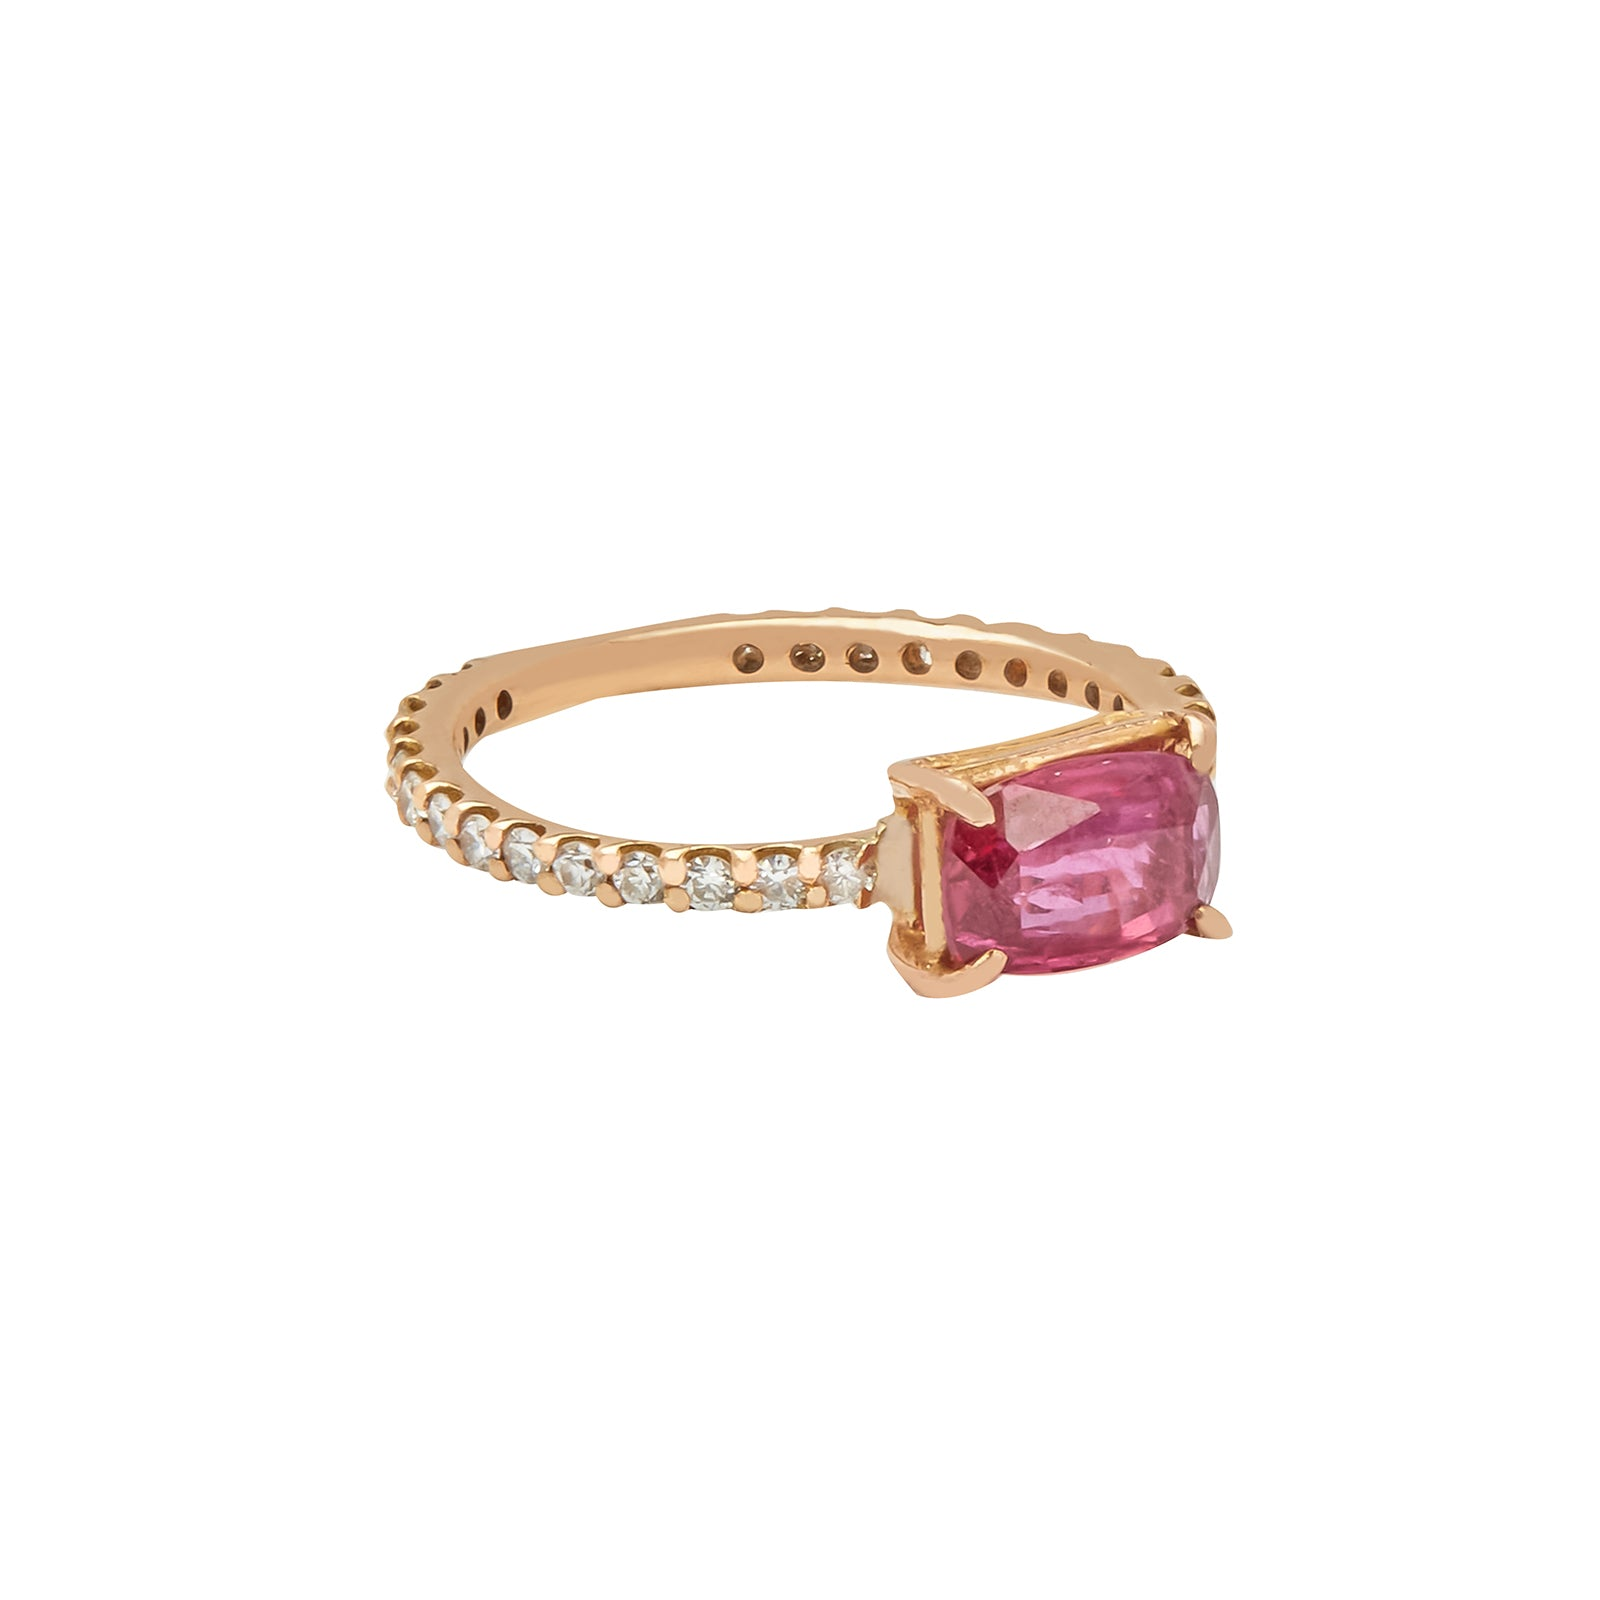 Shay Ruby Solitaire Ring - Rings - Broken English Jewelry